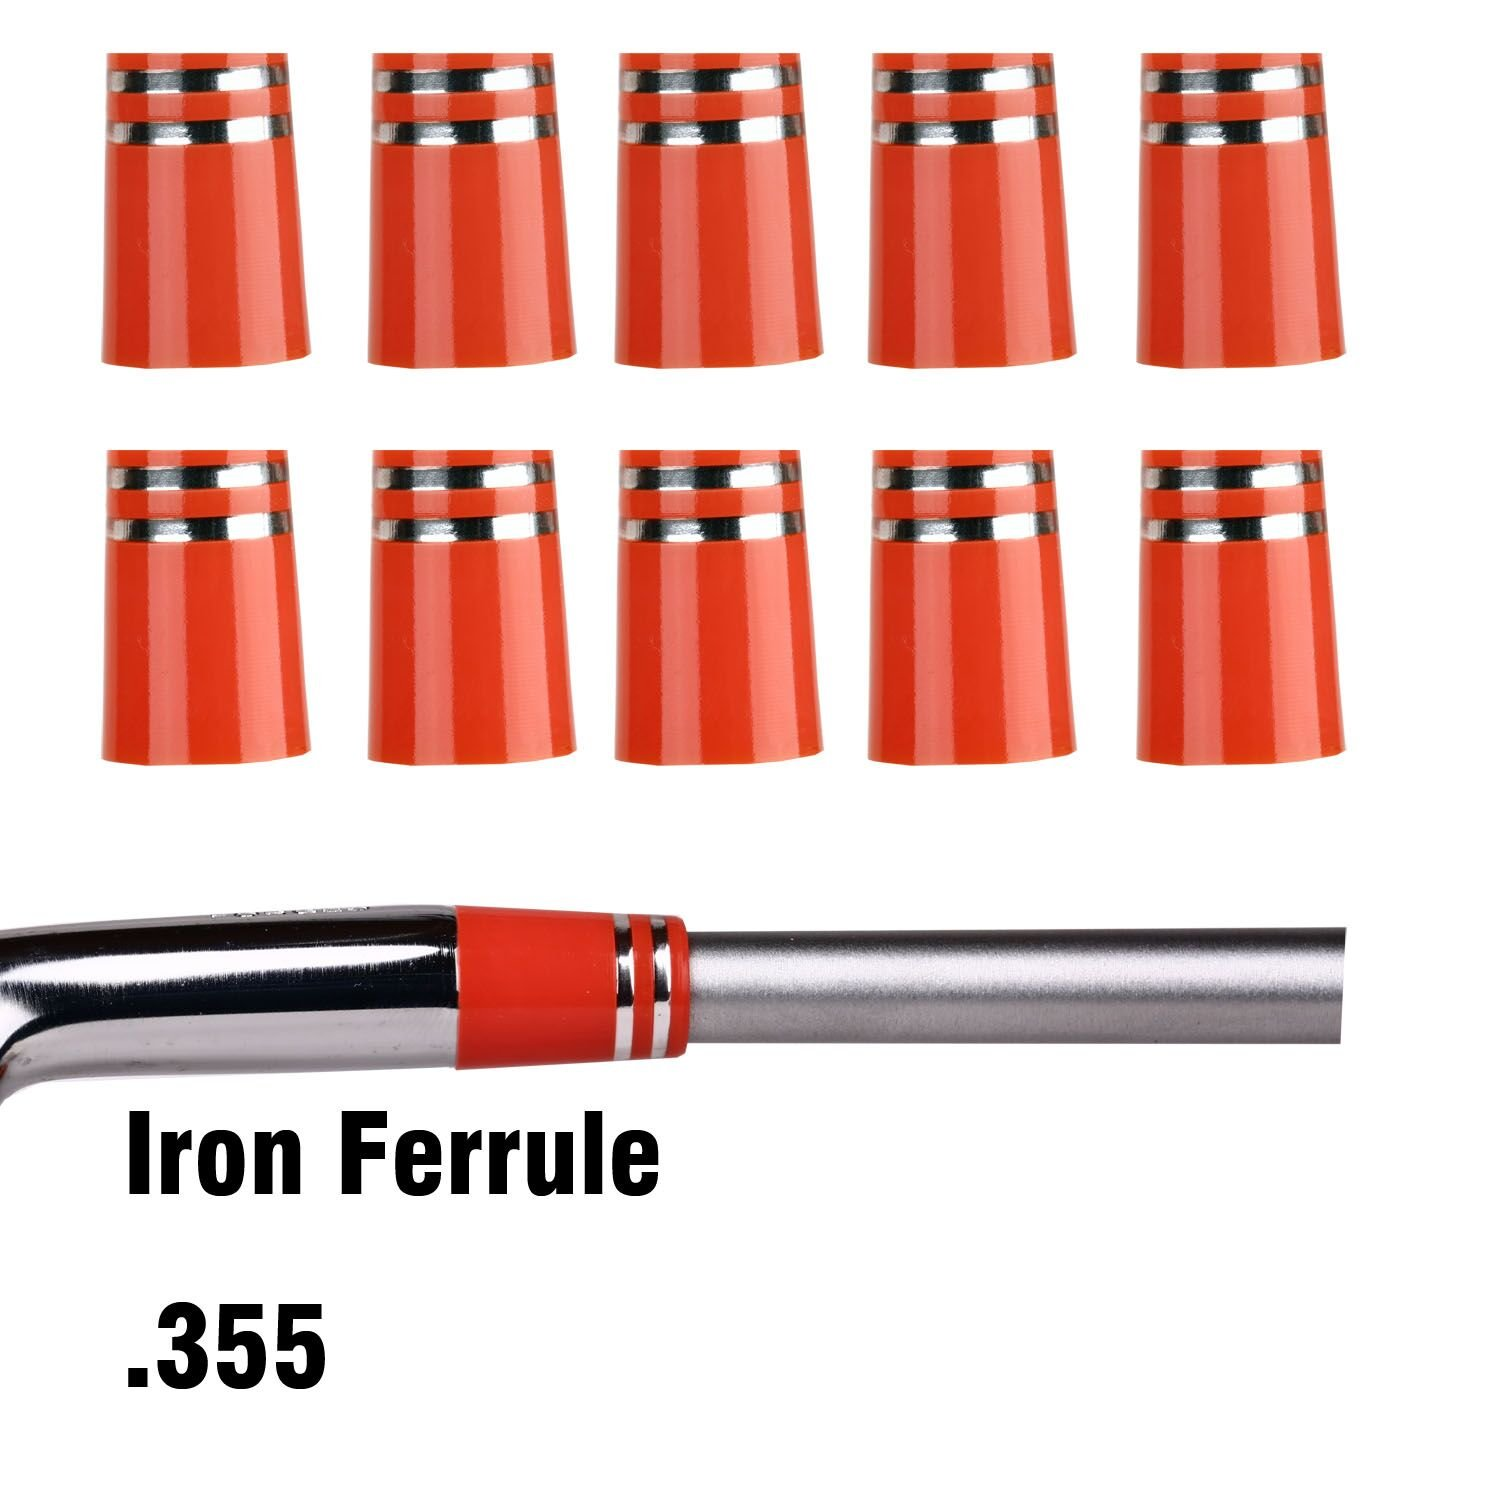 Sword &Shield sports 20pcs/pack golf ferrules .355 for Taper Tip Iron Wedge Orange with double silver rings